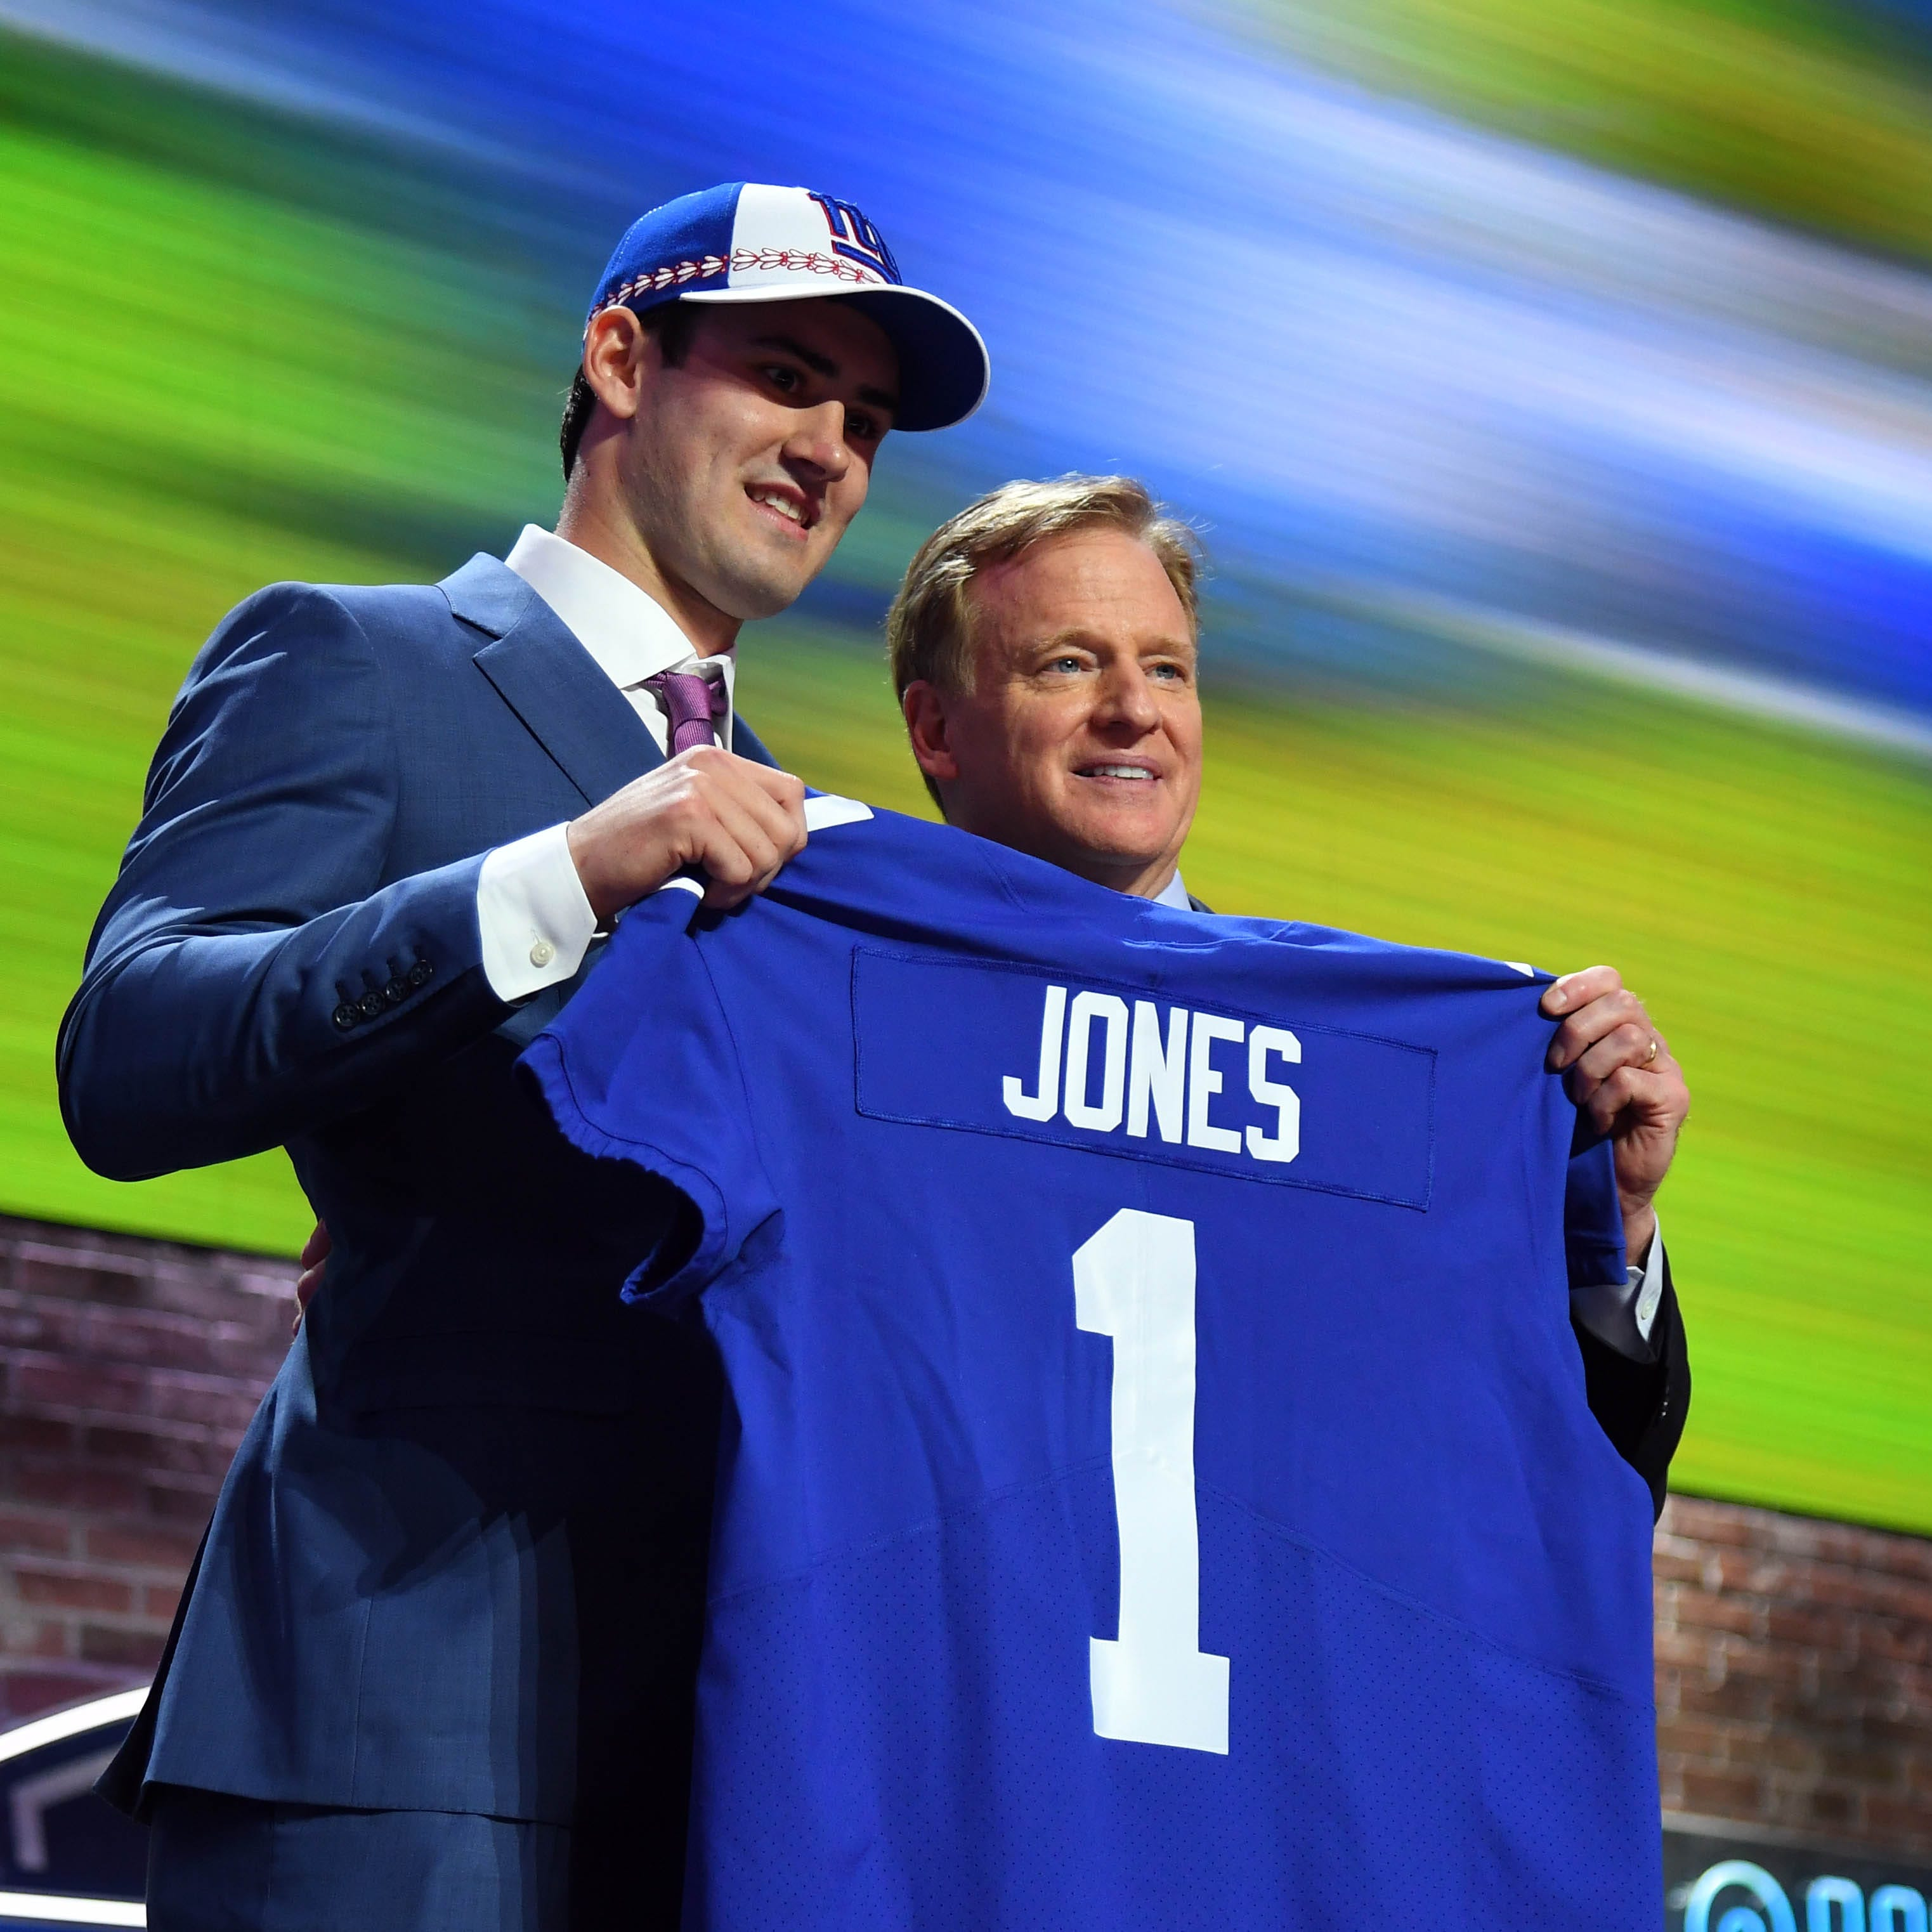 Daniel Jones to Giants: 3 things to know about the No. 6 pick in the NFL Draft